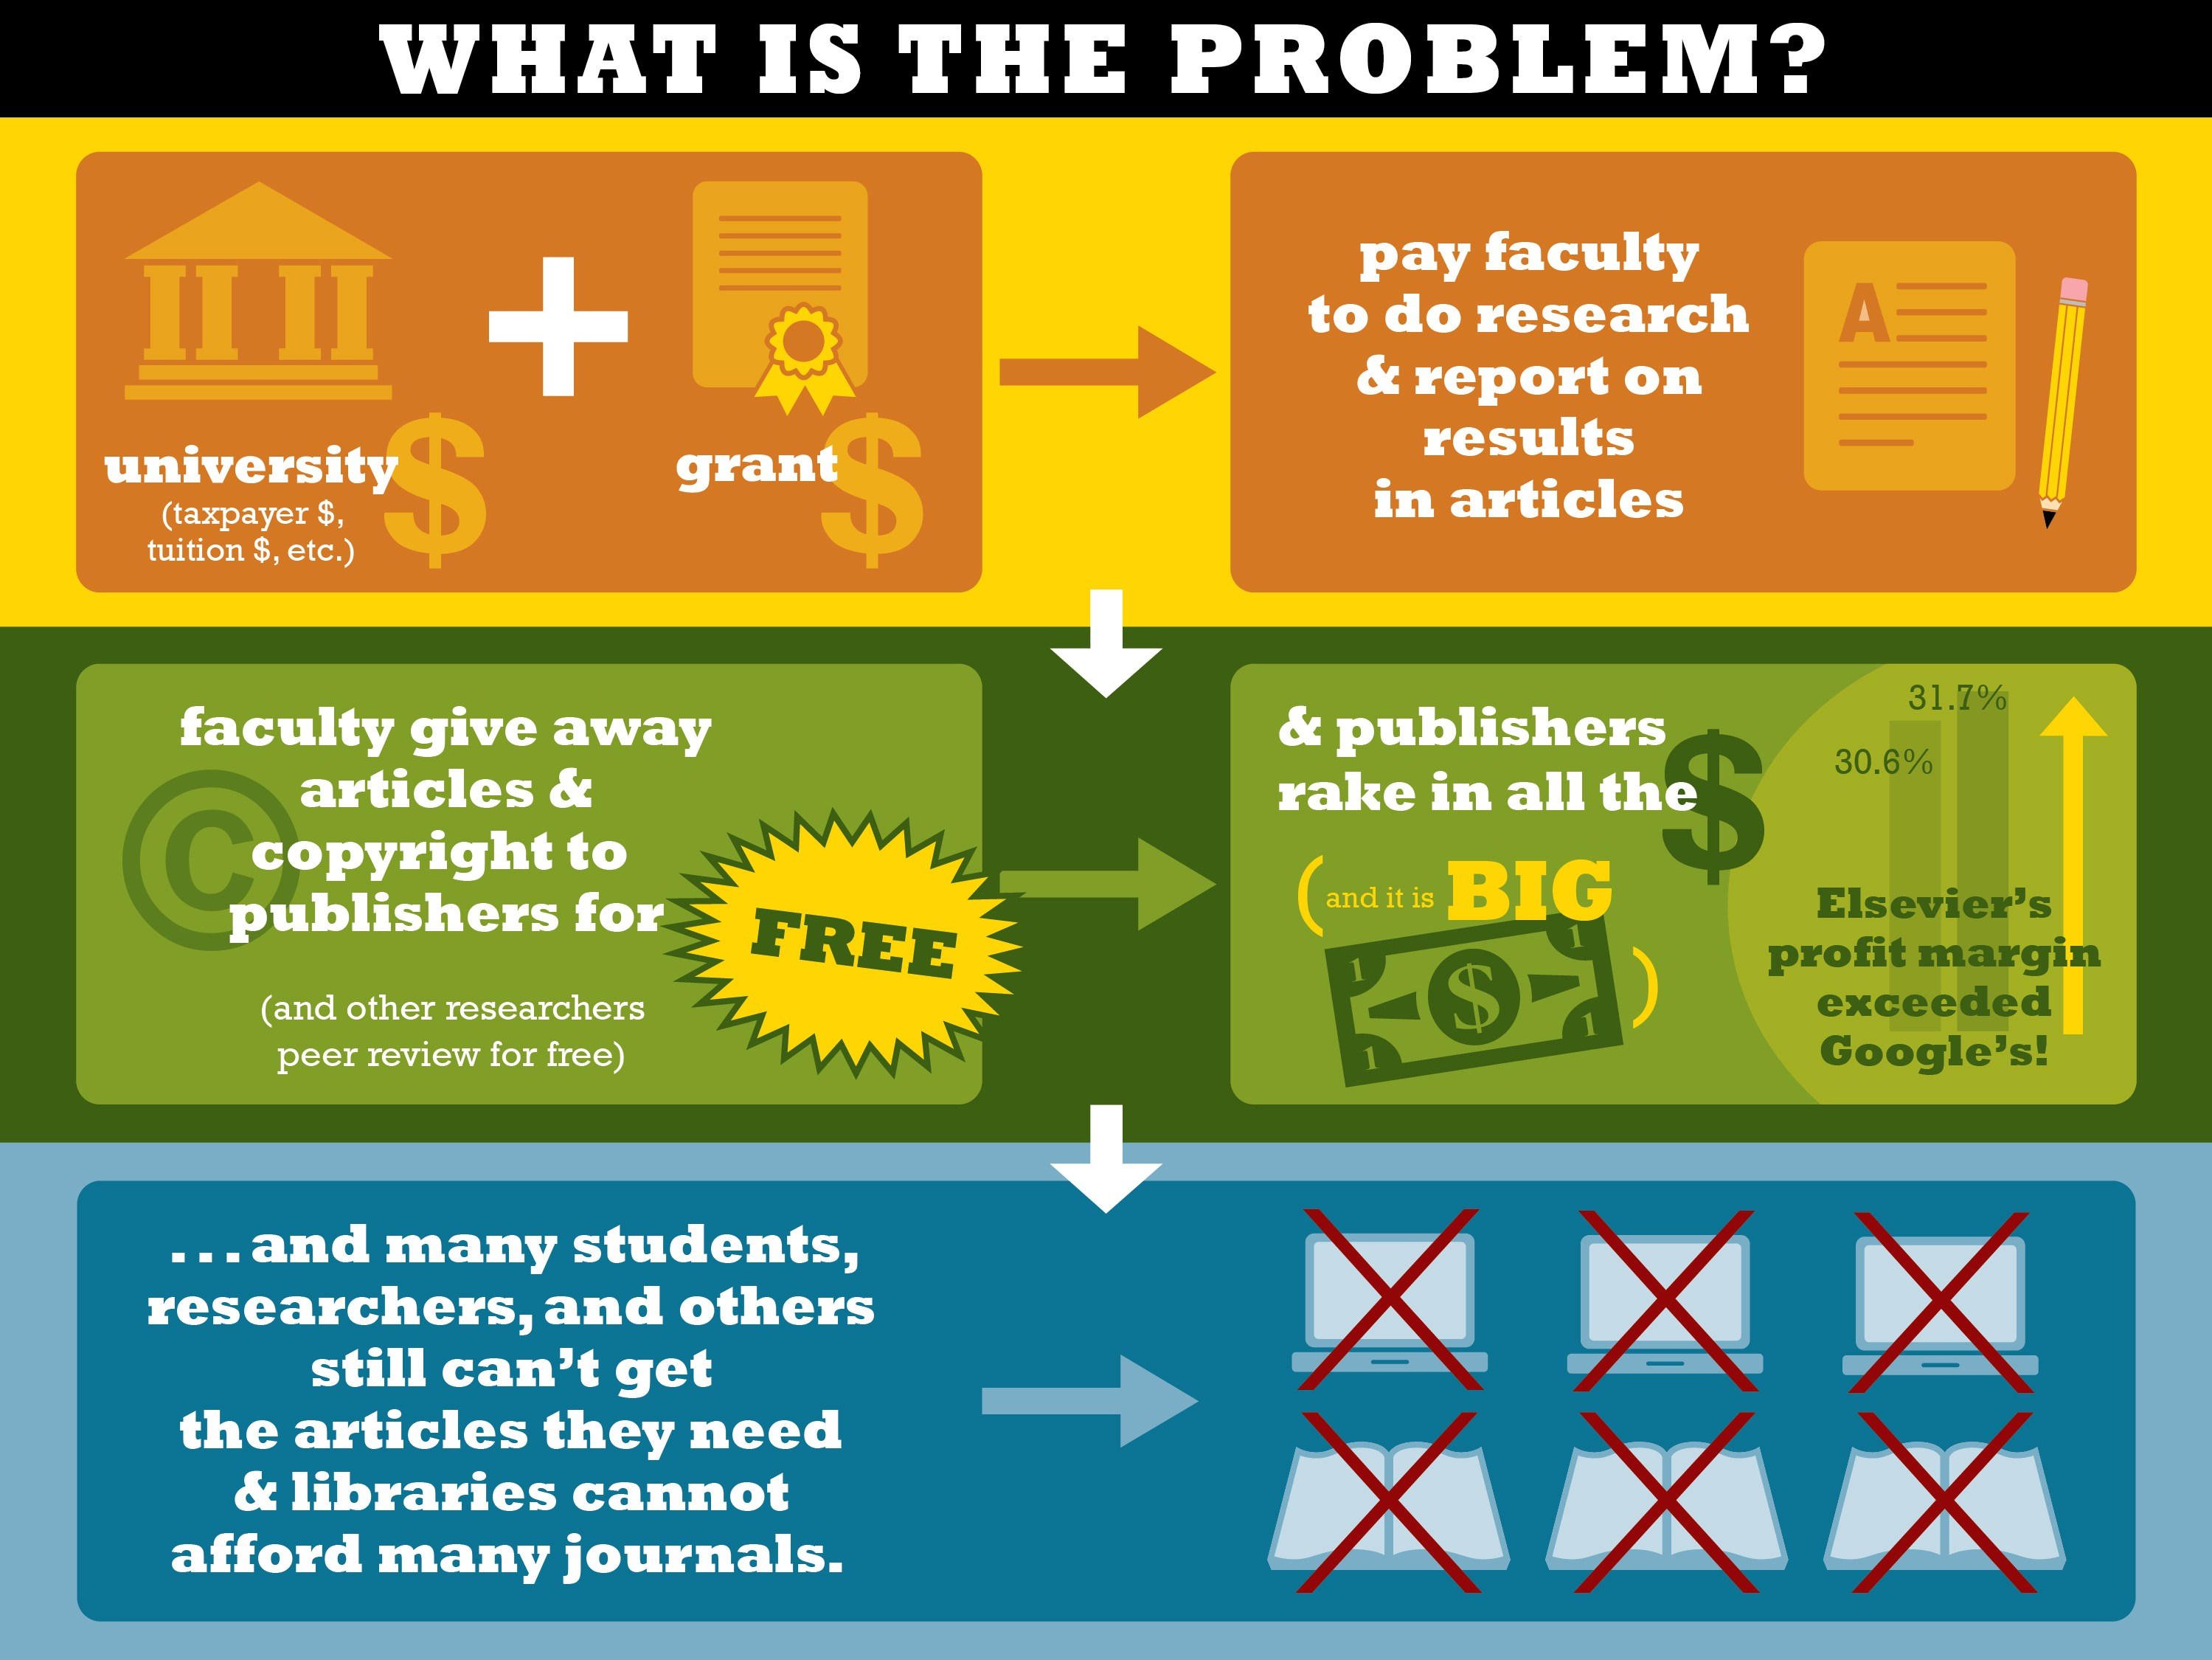 What is the problem? Universities (funded by taxpayers and tuition) and grant funders pay faculty to do research and report on results in articles. Faculty give away articles and copyright to publishers for free, and other researchers peer review for free. Publishers rake in all the money, and it is big money. Many students, researchers, and others still can't get the articles they need and libraries cannot afford many journals.